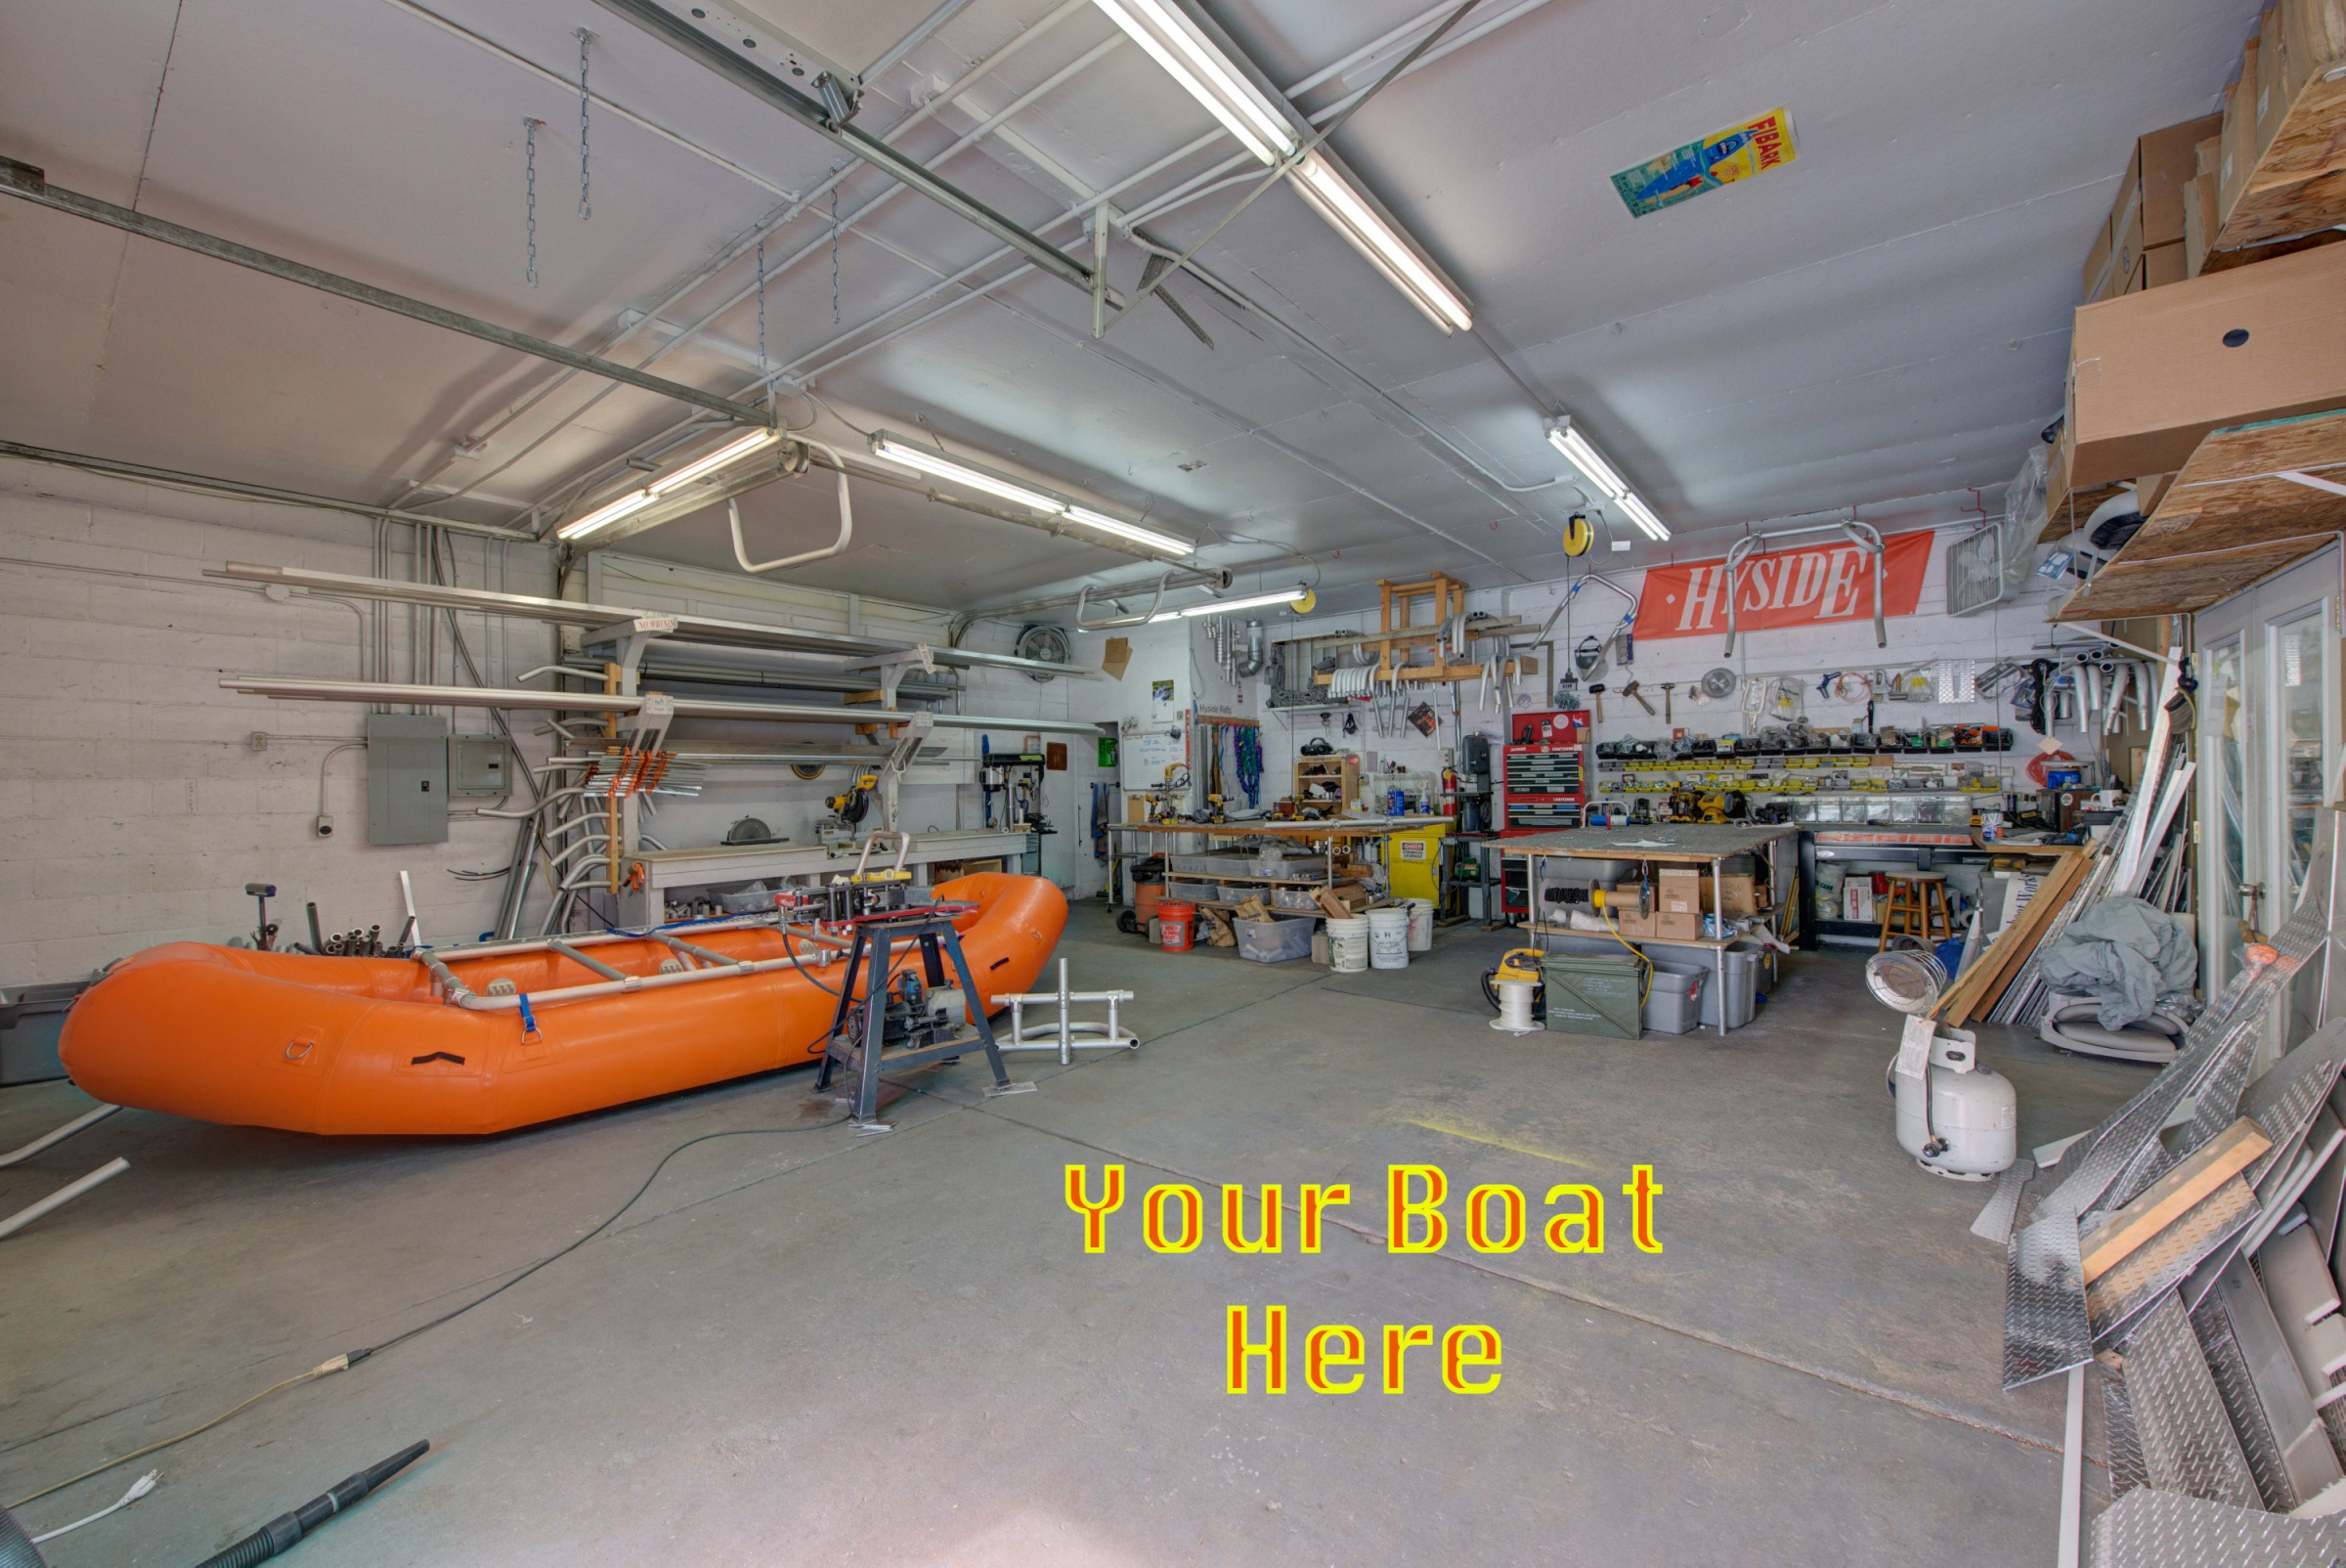 Click image for larger version  Name:boat-here.jpg Views:620 Size:1.11 MB ID:33141